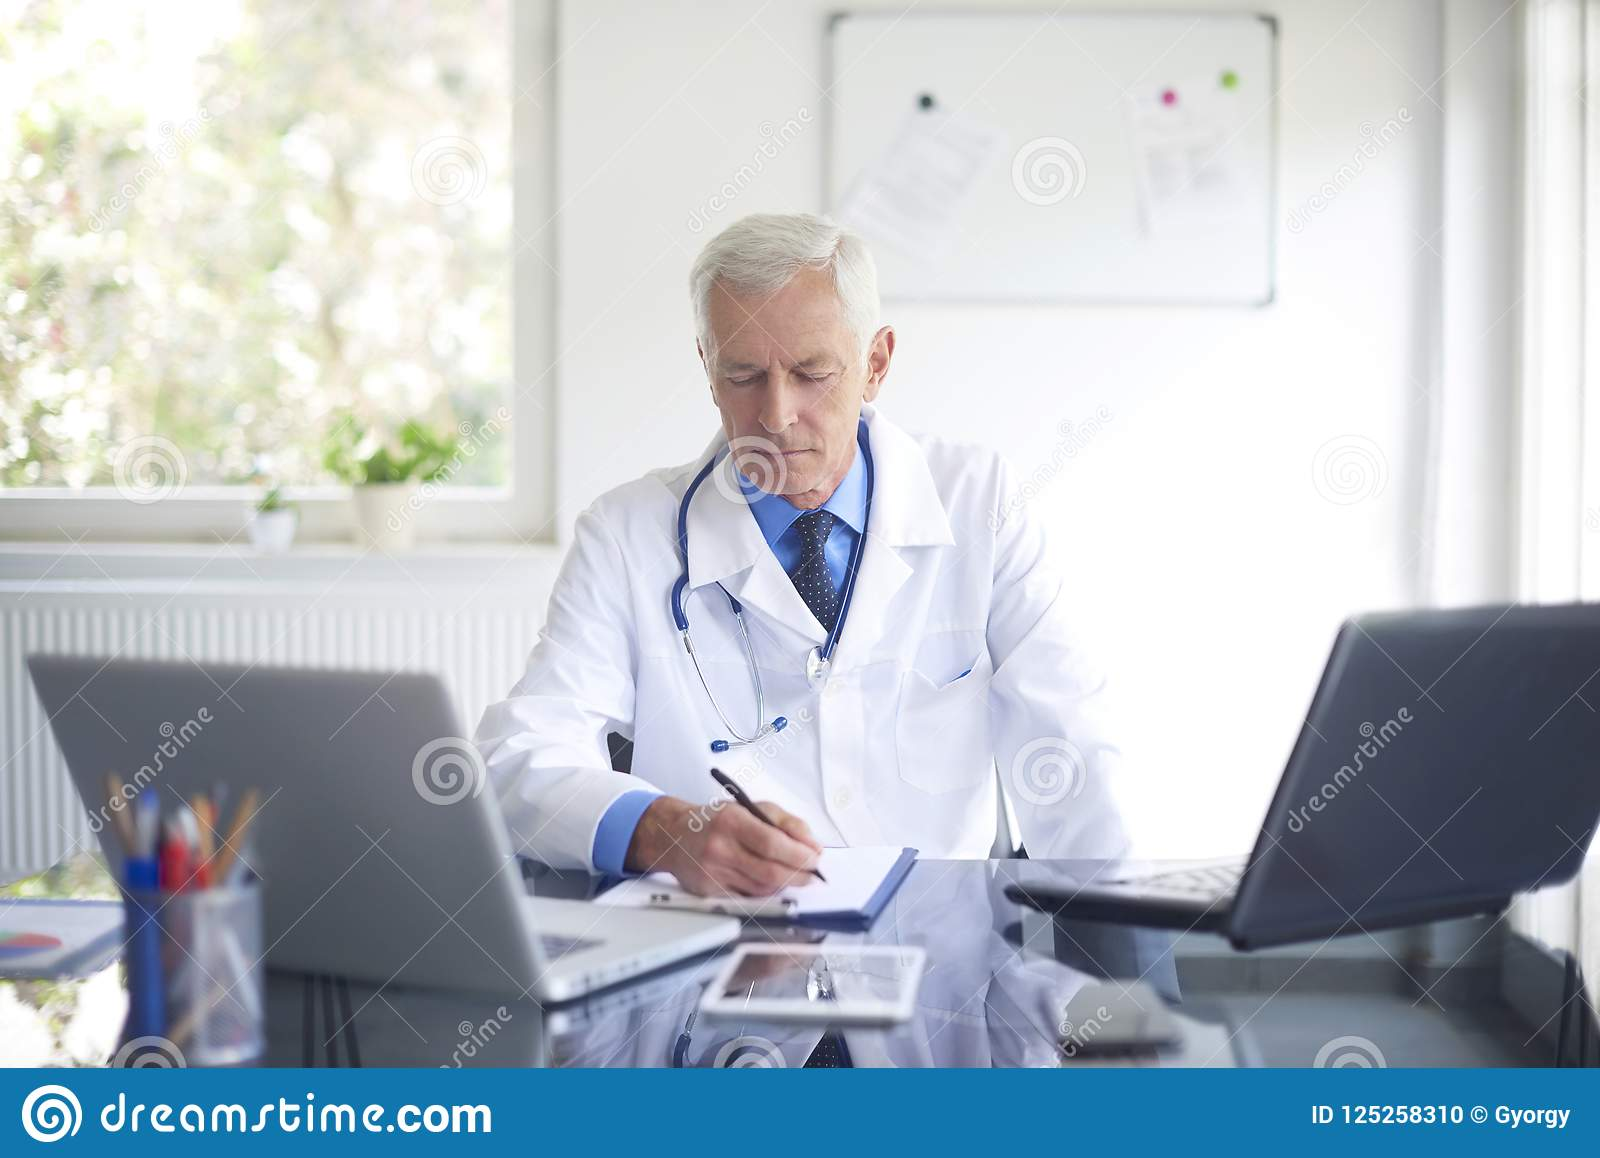 male doctor specialist